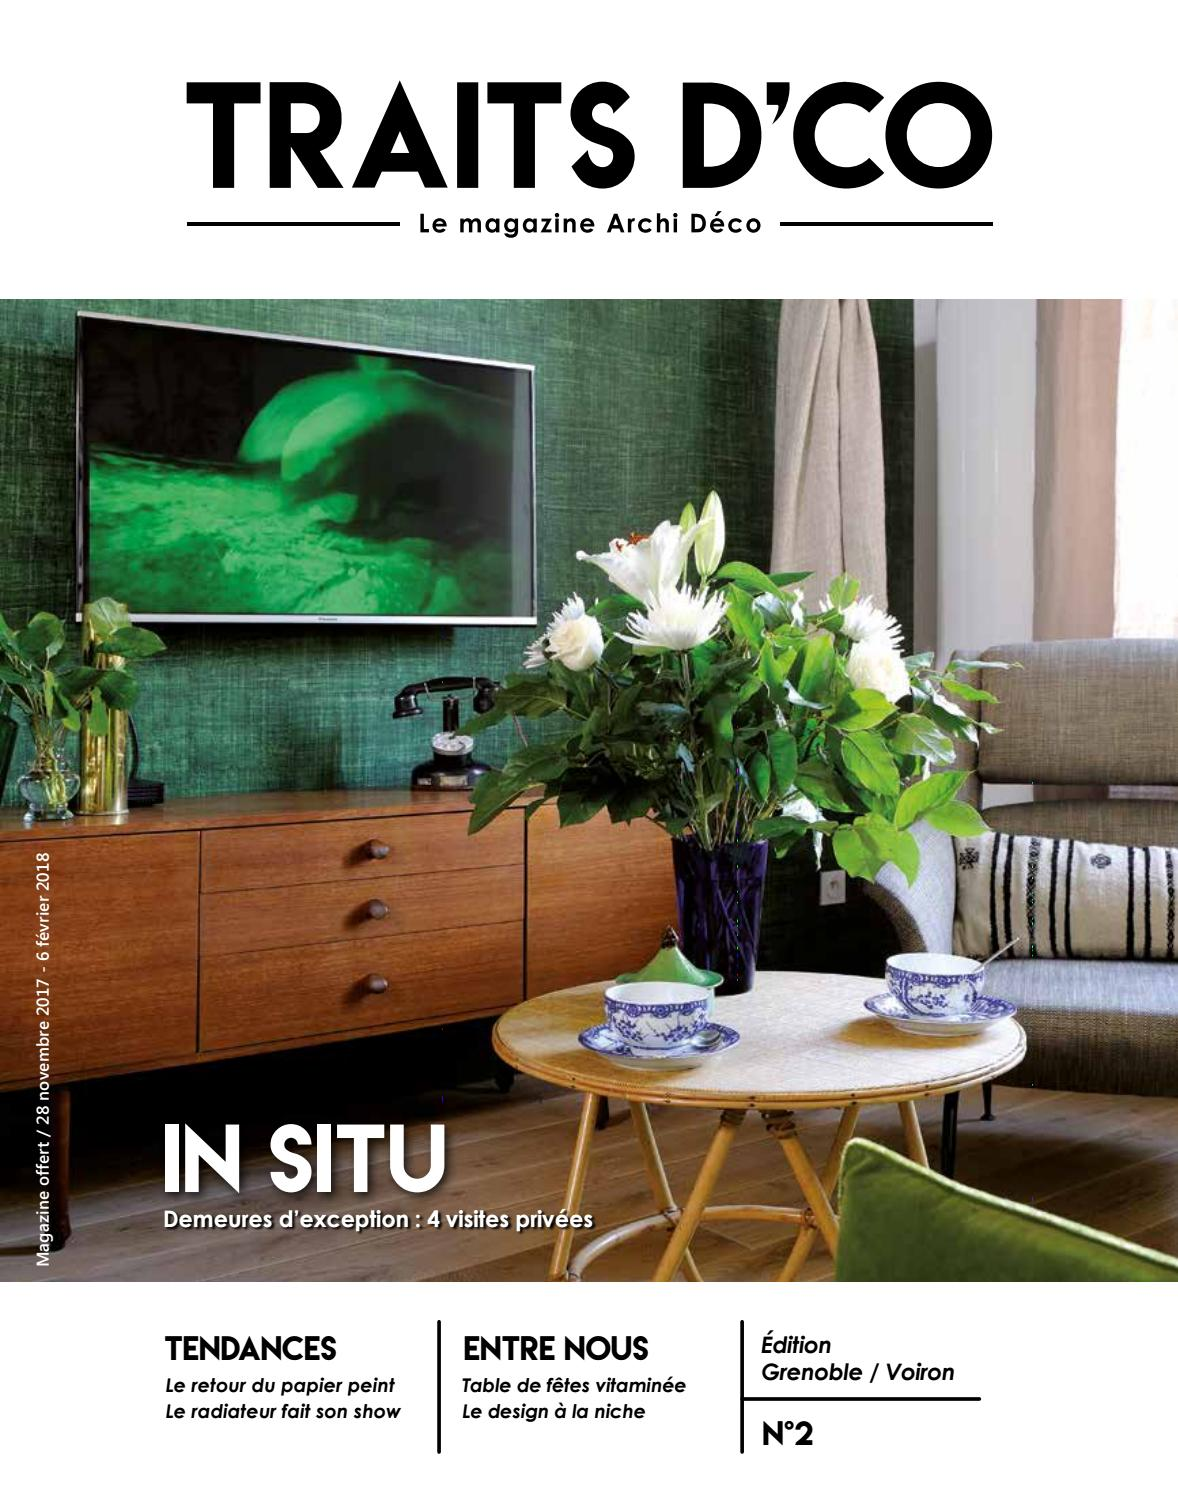 traits dco magazine grenoble voiron n2 novembre 2017 by traits d 39 co issuu. Black Bedroom Furniture Sets. Home Design Ideas